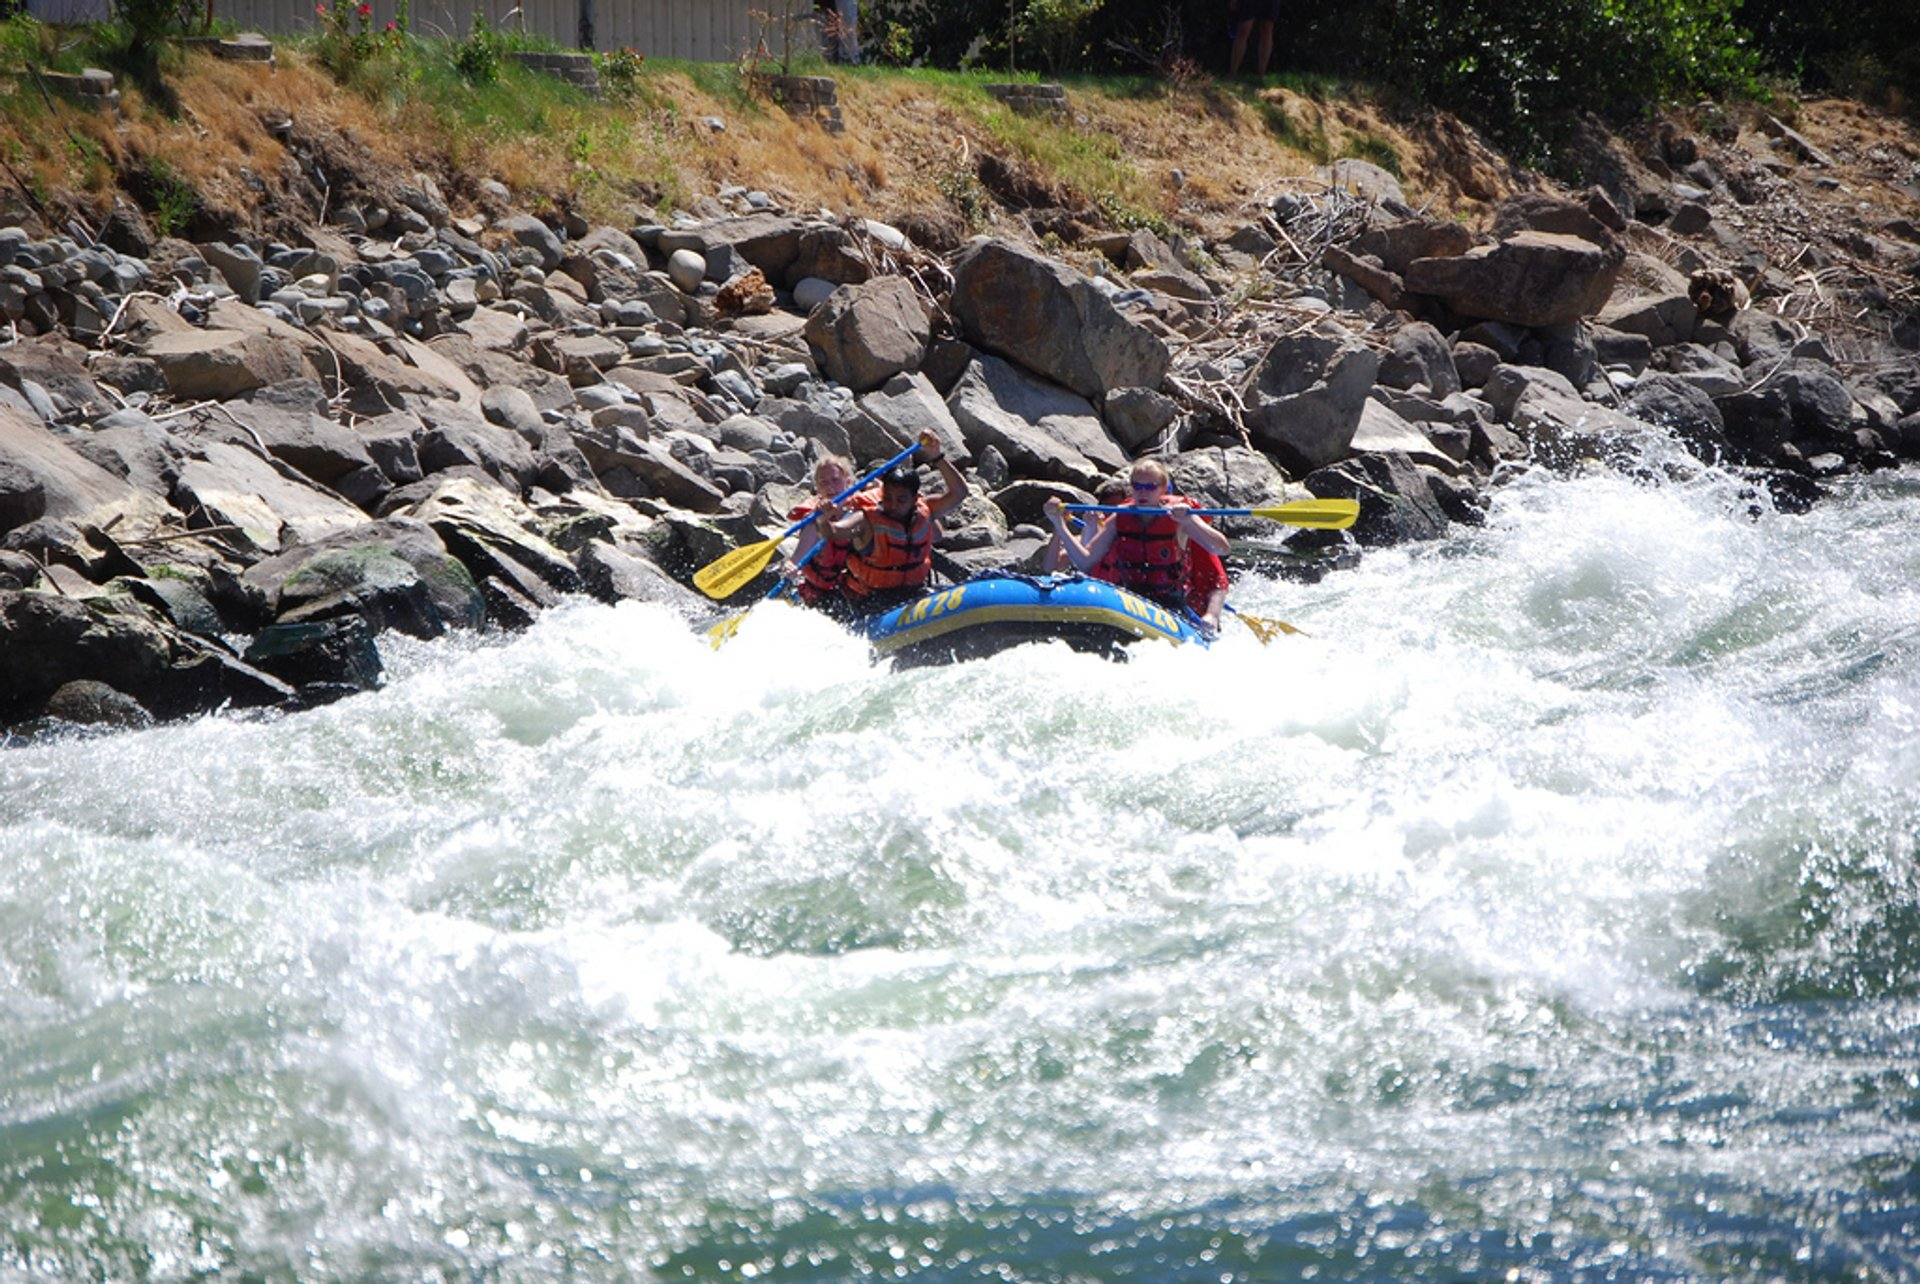 Rafting at Wenatchee River 2019